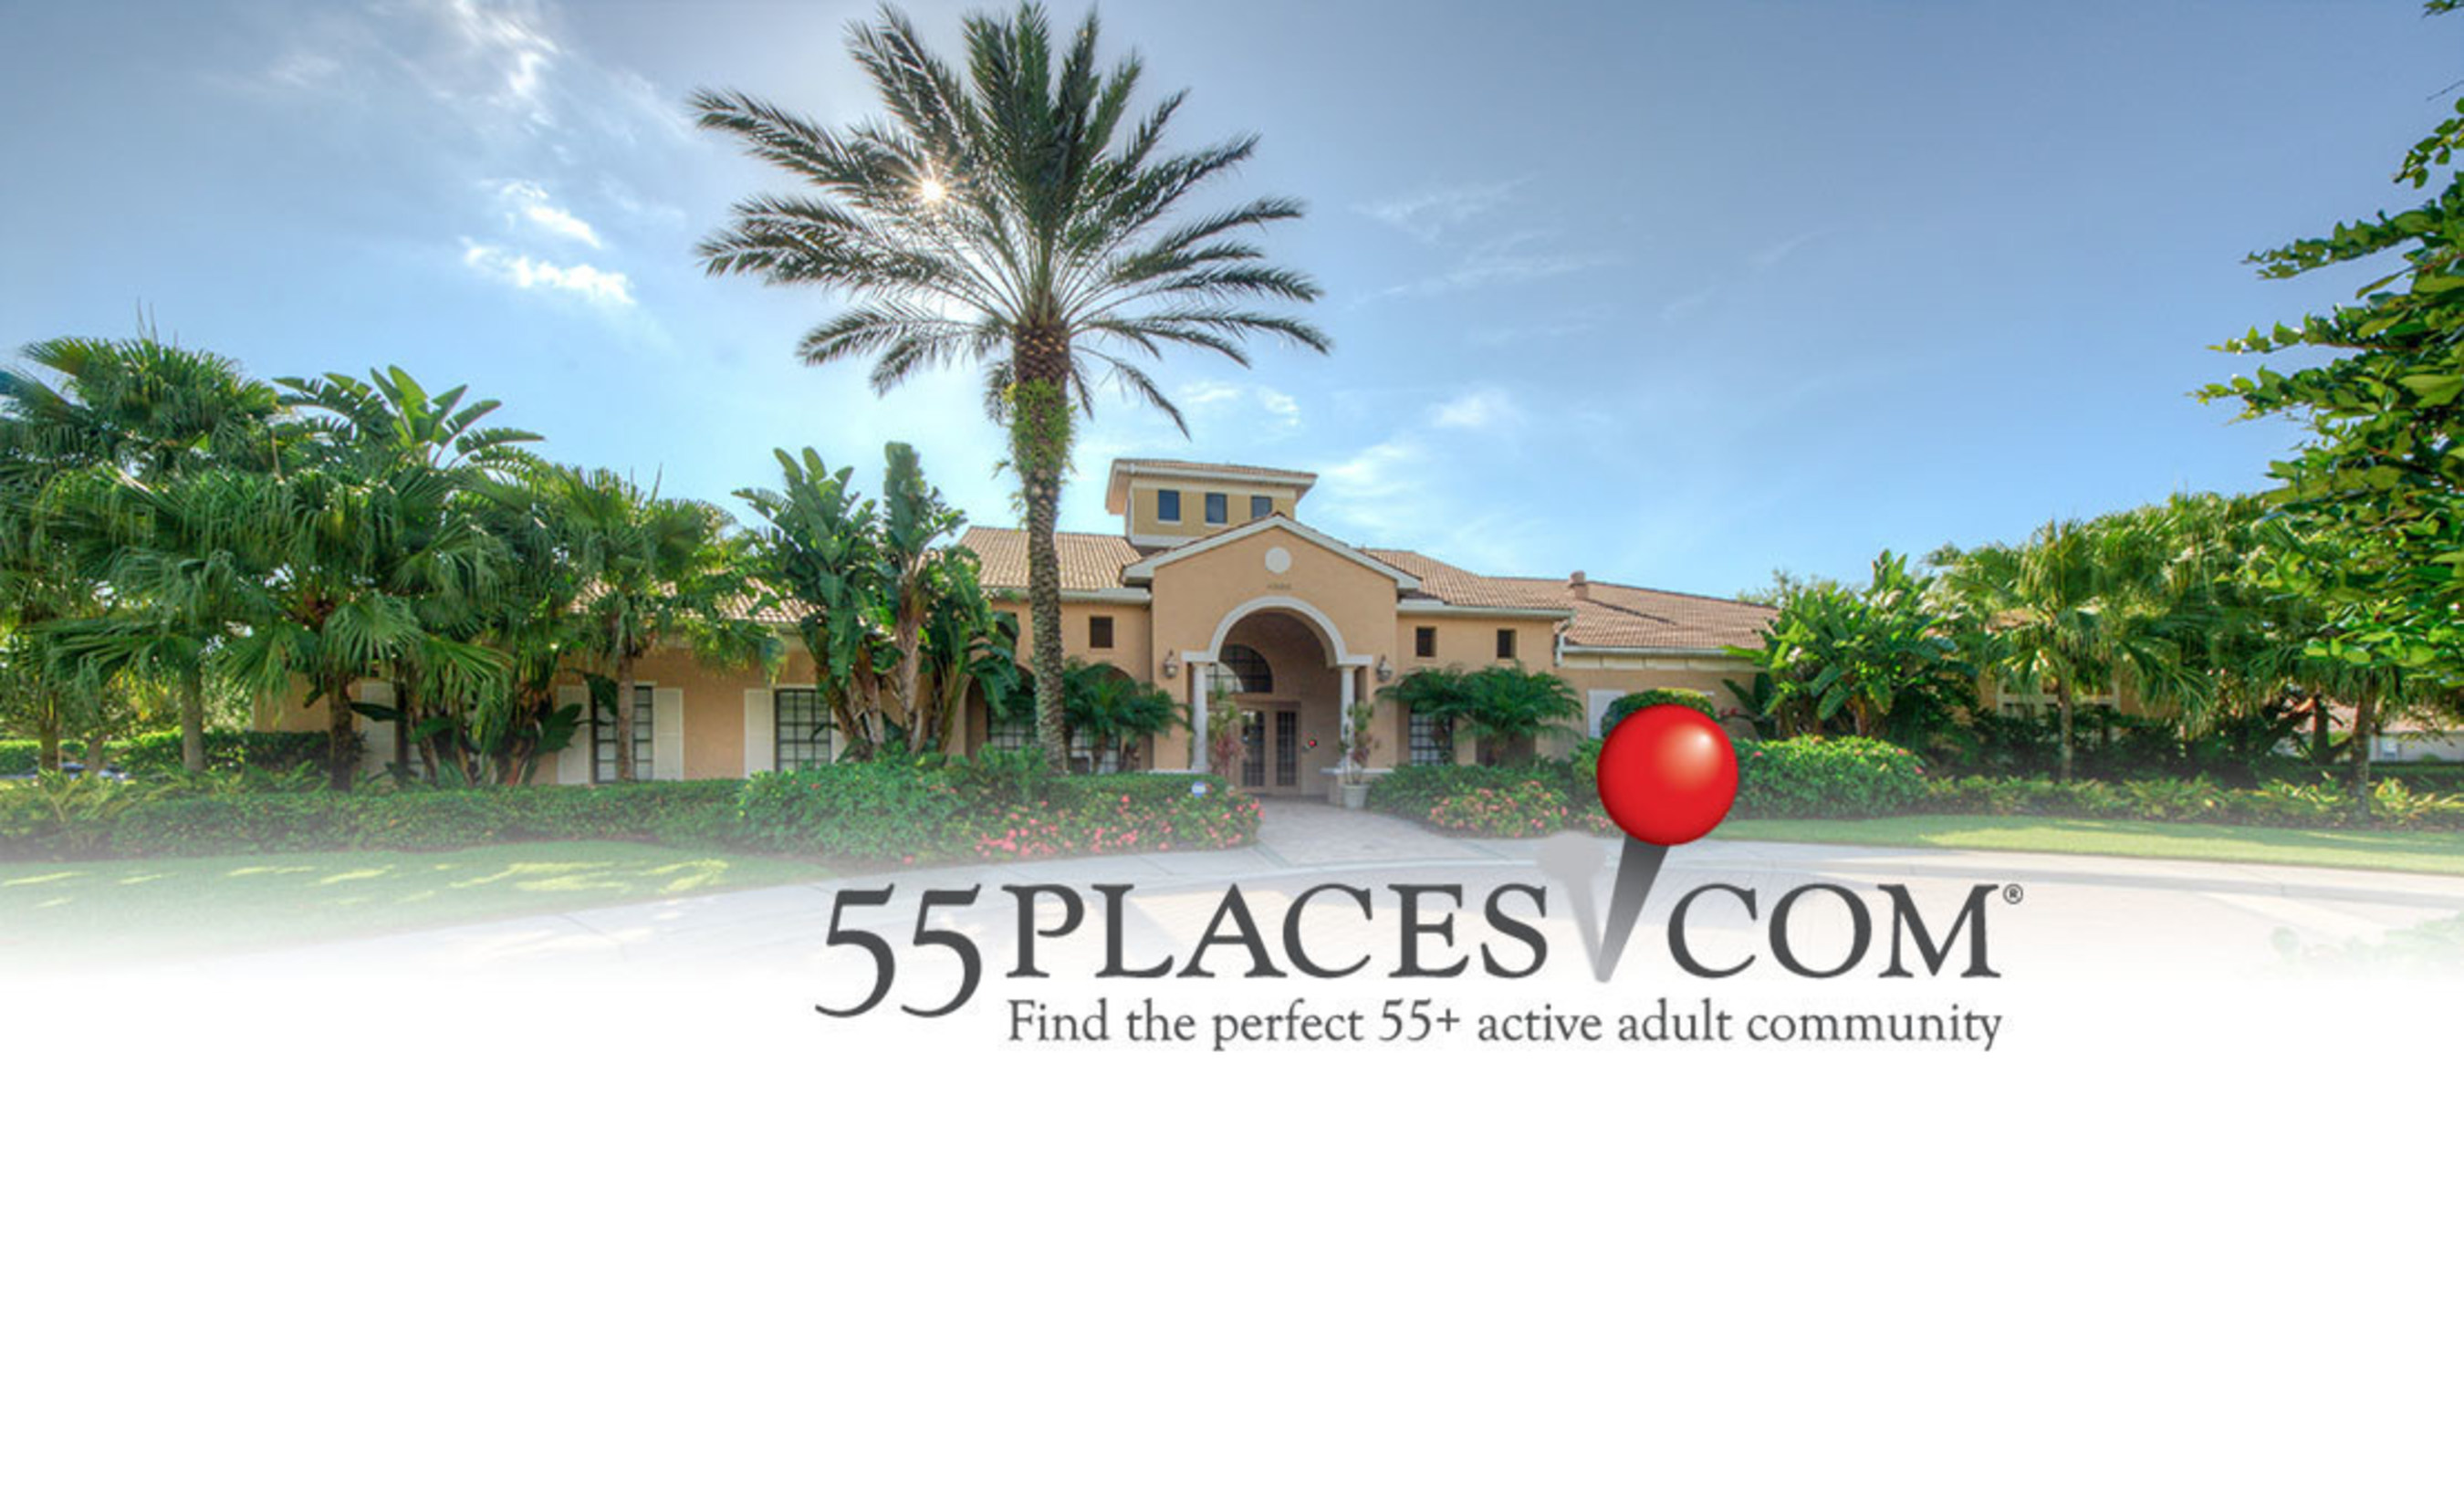 55places.com is excited to announce 10 of The Best Brand New Active Adult Communities for 2015